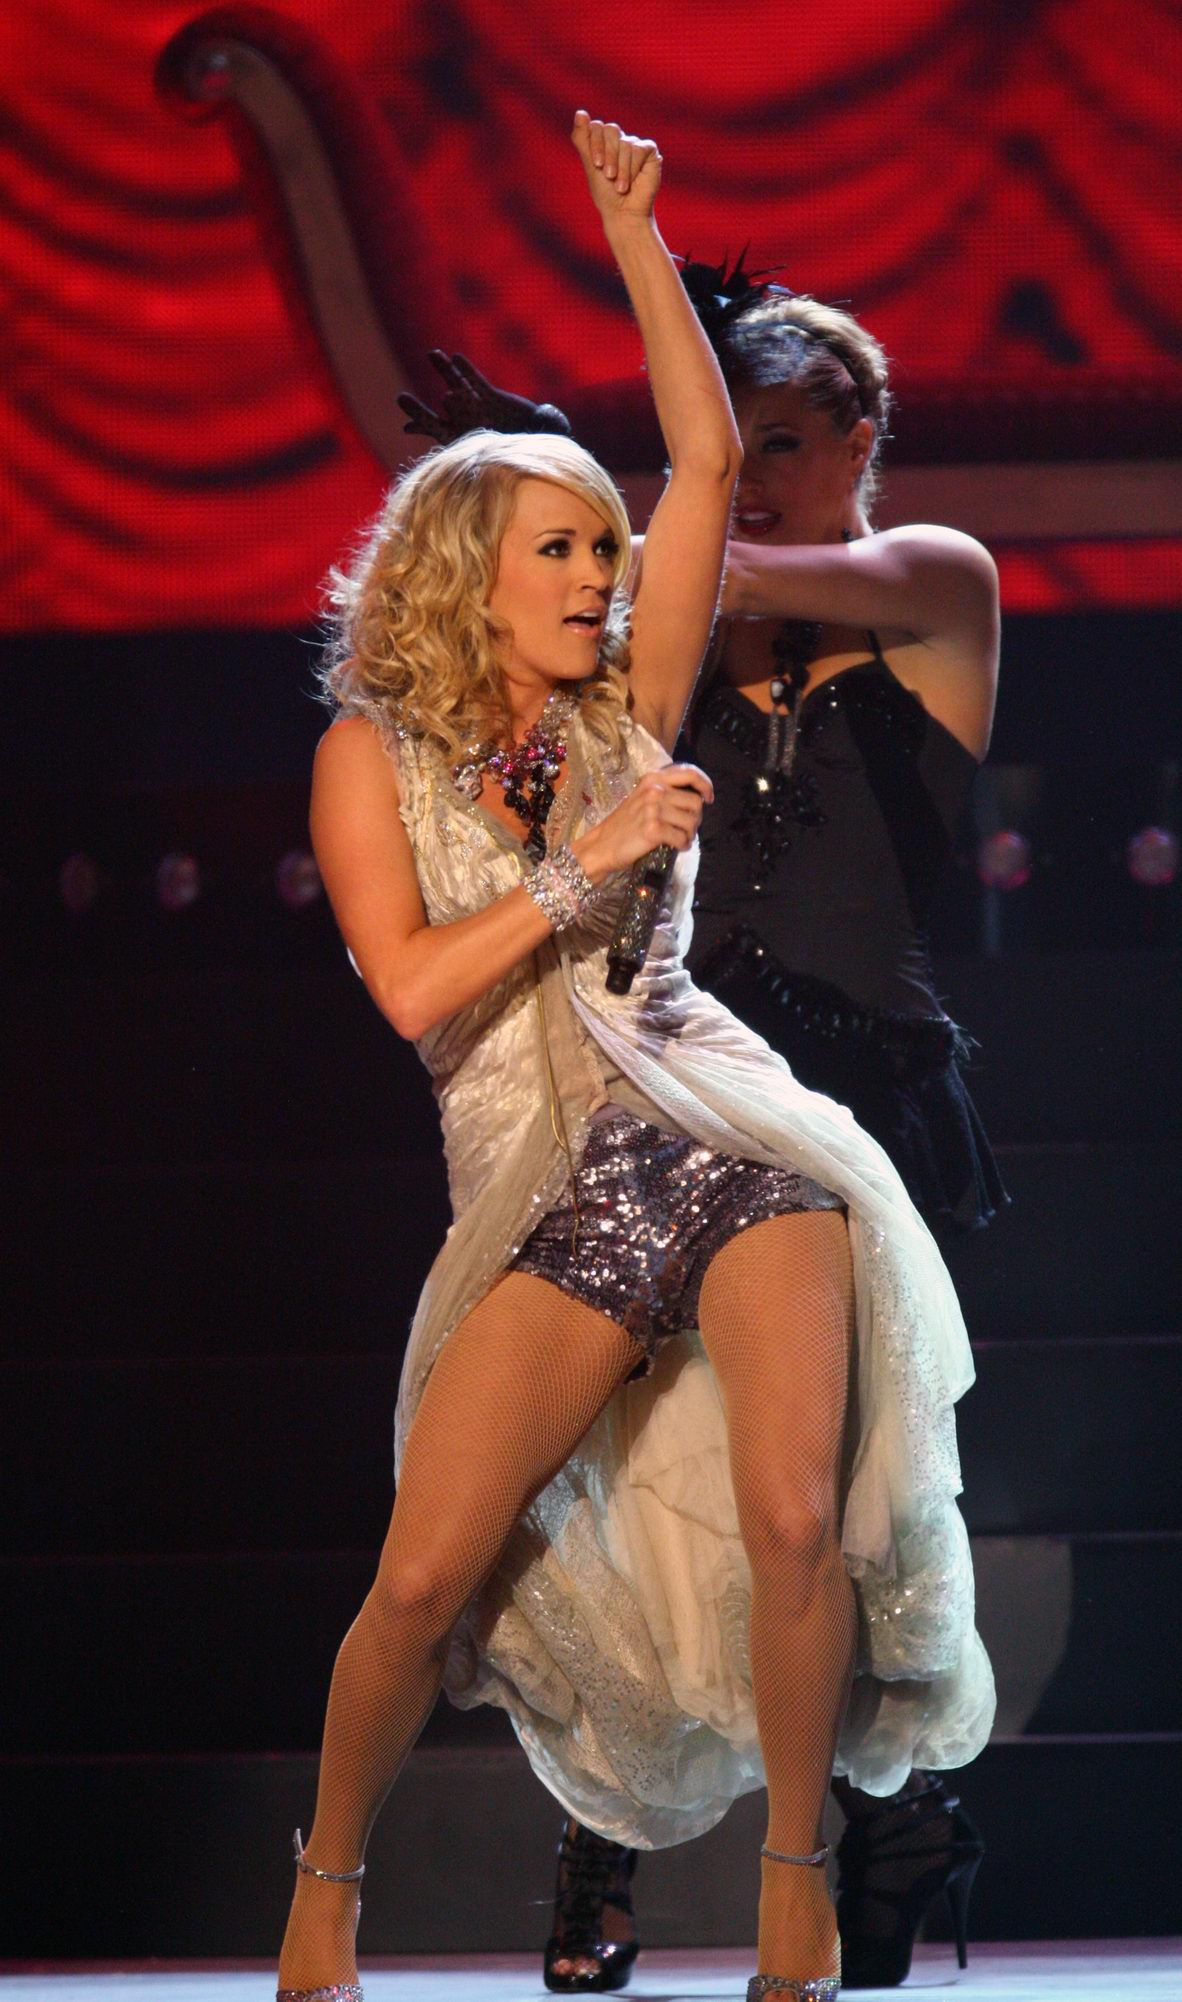 Carrie underwood in pantyhose